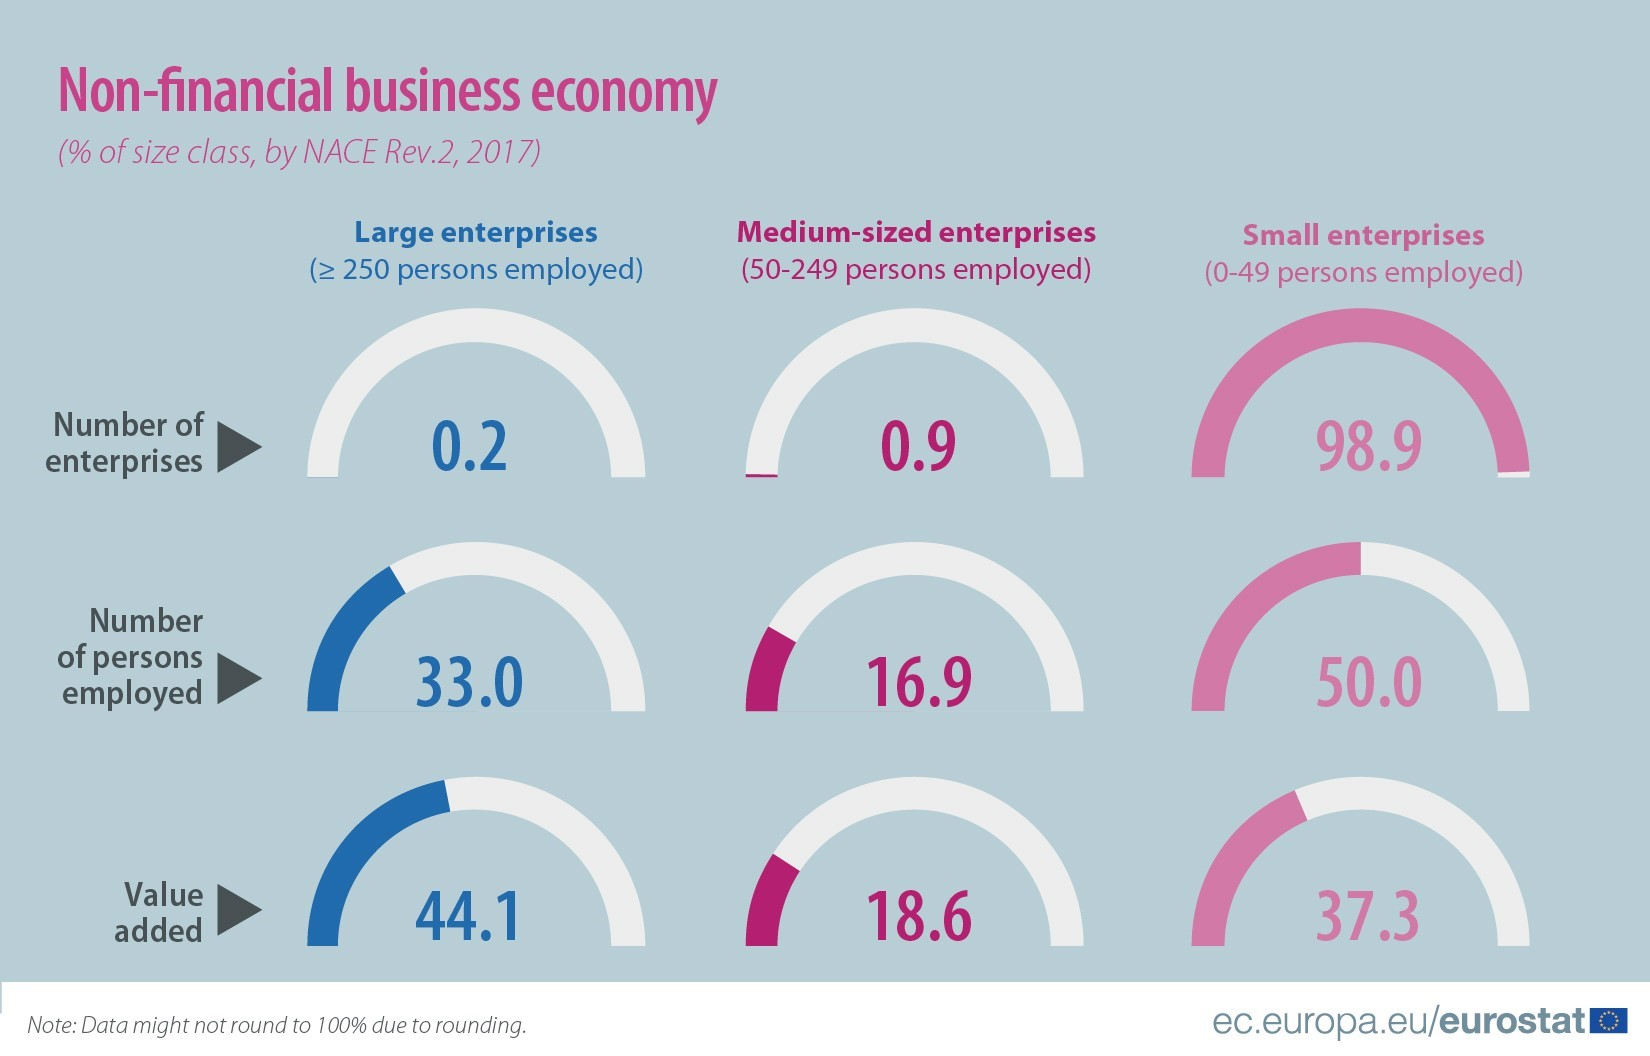 Non-financial business economy by size class, 2017